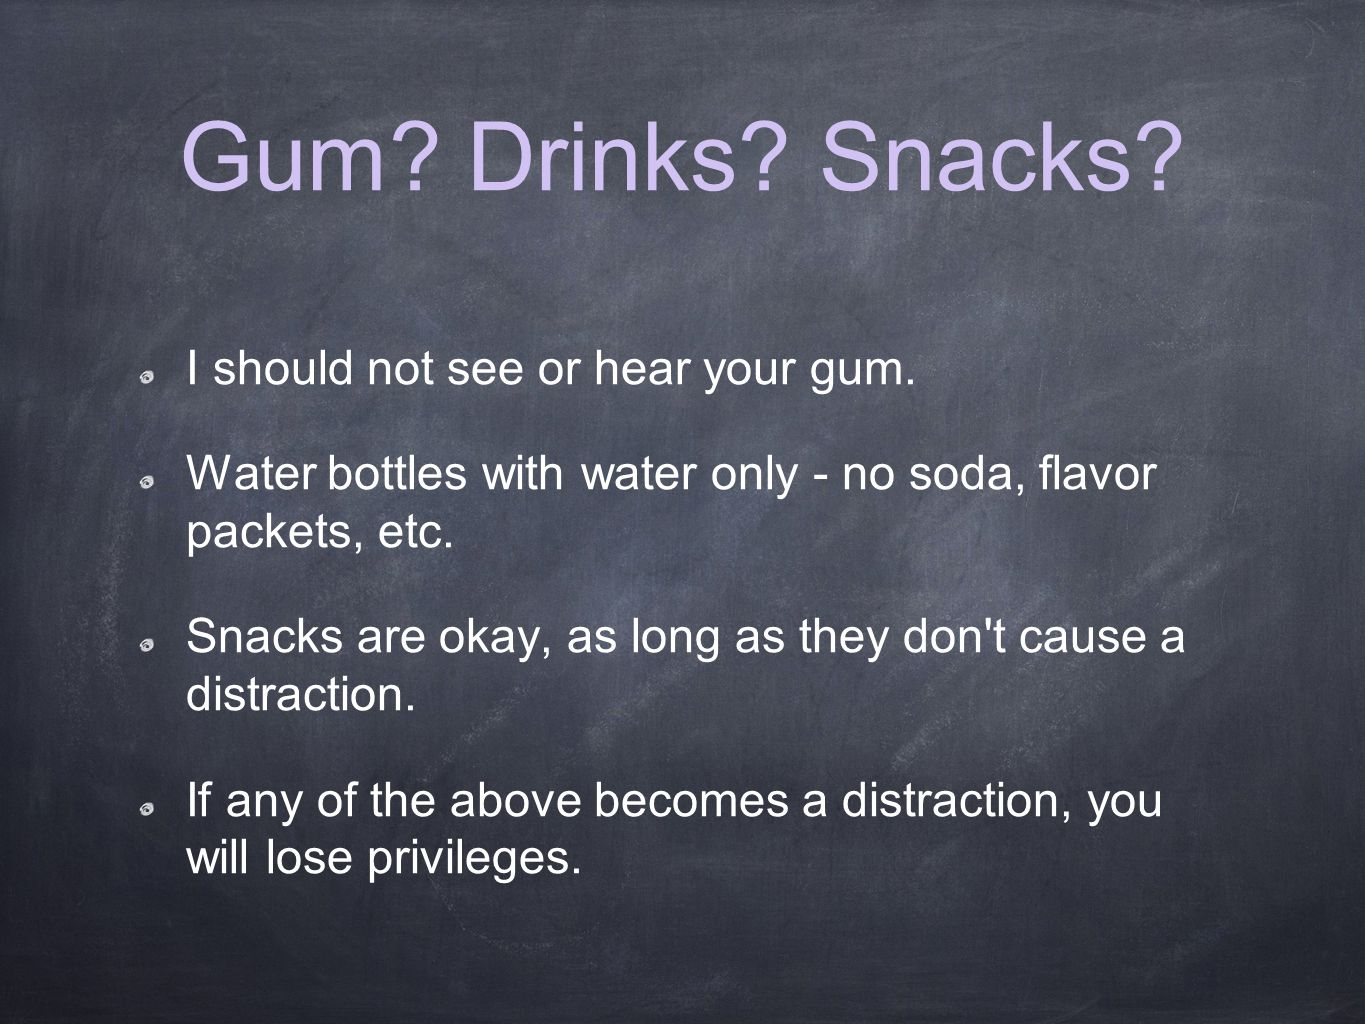 Gum. Drinks. Snacks. I should not see or hear your gum.